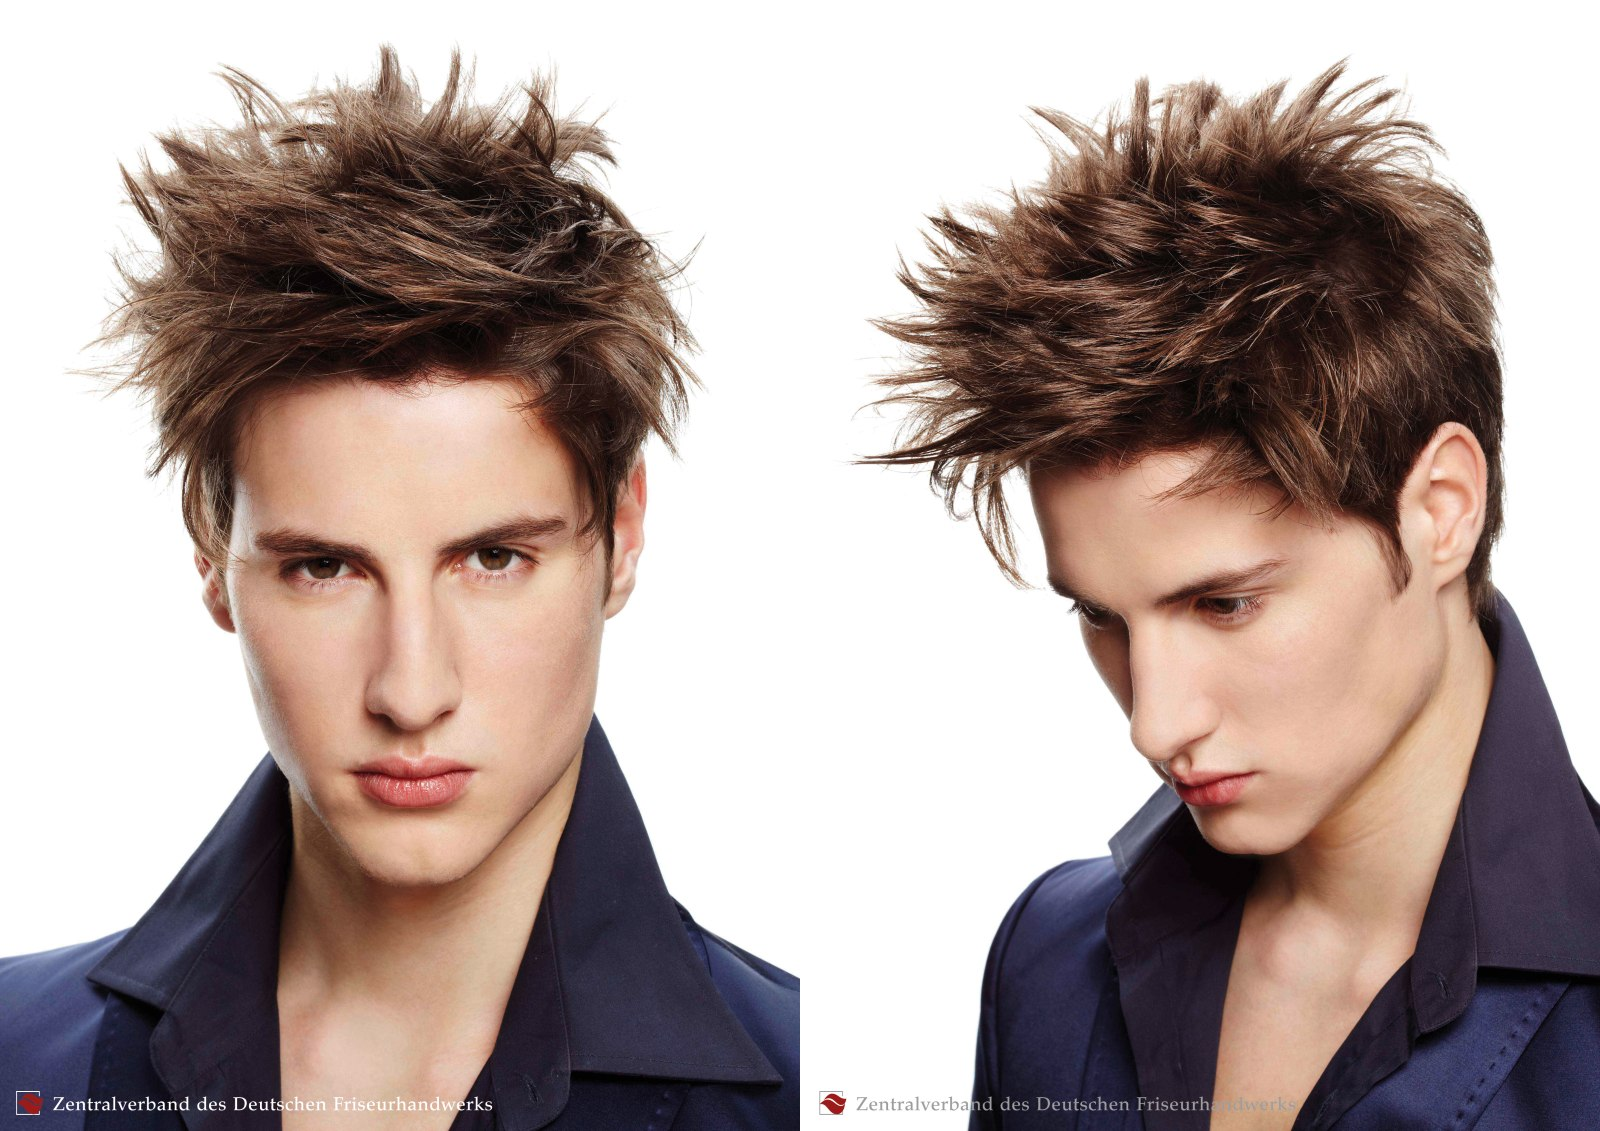 Super Spiked Hairstyle And Criss Cross Hair Styling For Men Short Hairstyles Gunalazisus